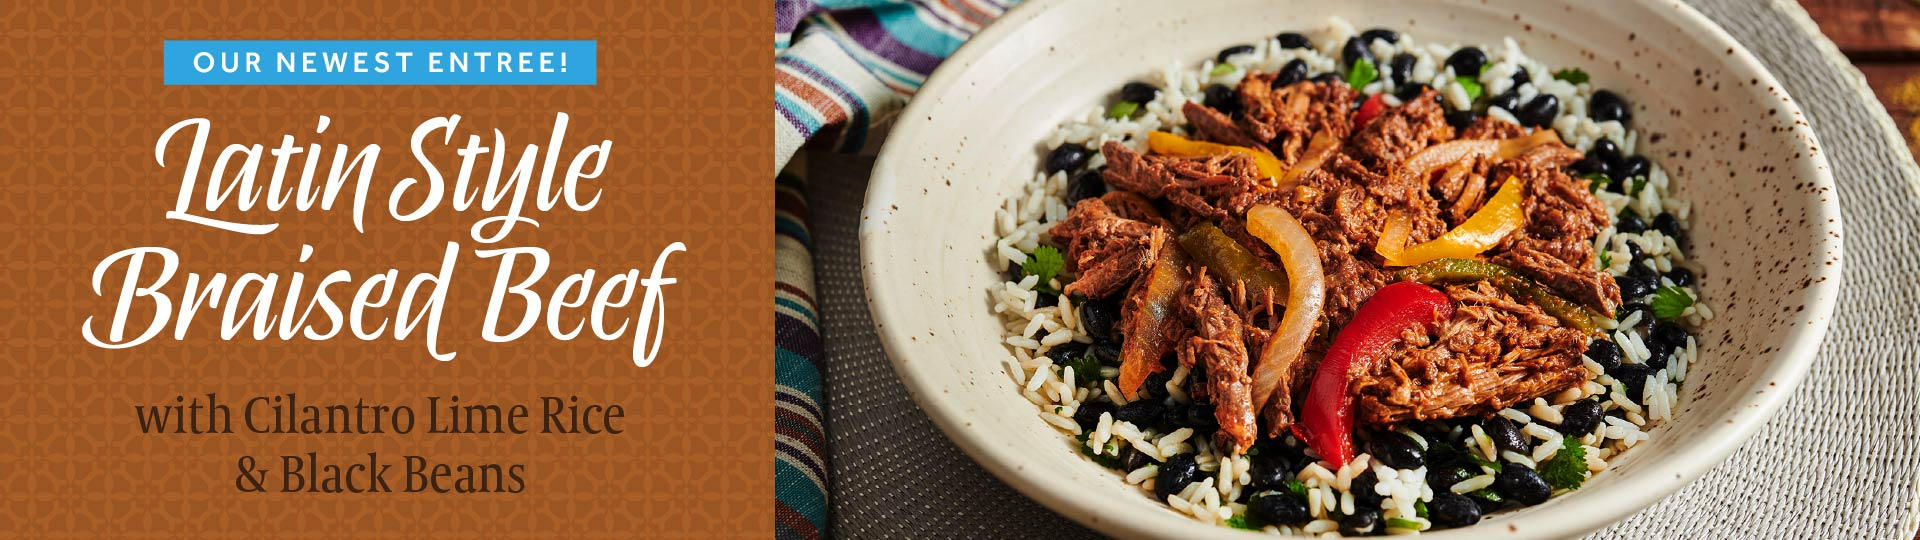 Eat Fresco - Latin Style Braised Beef - with Cilantro Lime Rice & Black Beans